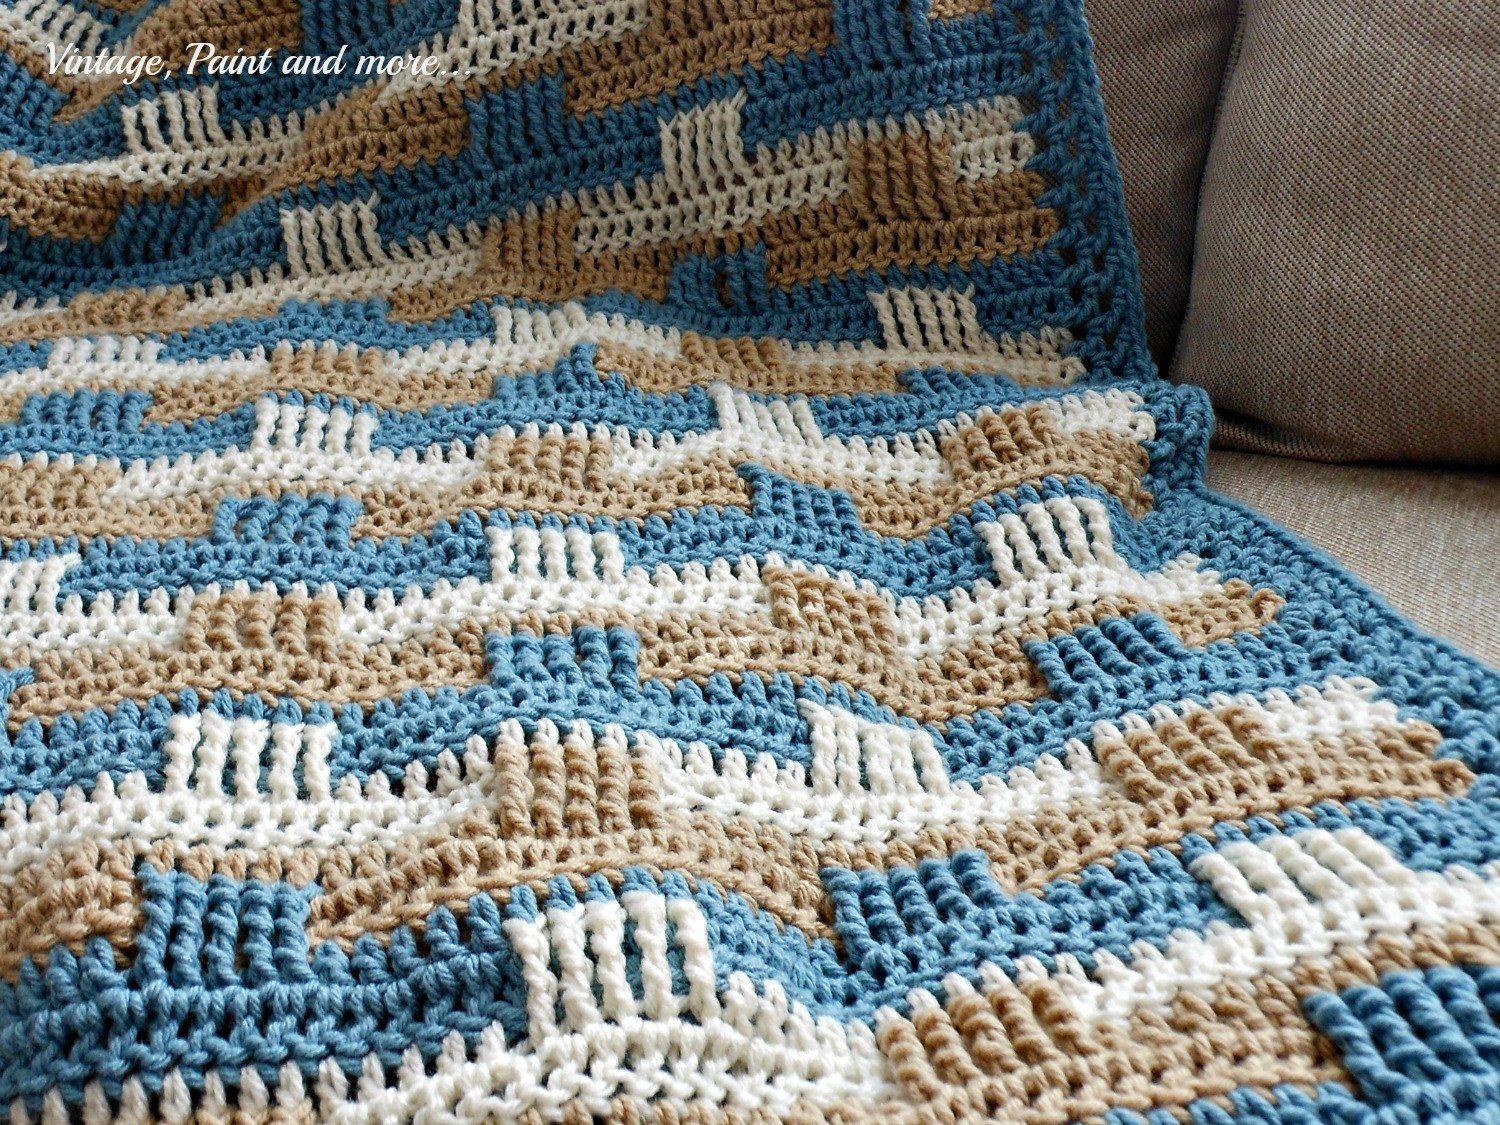 New Crochet Afghan and Stenciled Pillow Basketweave Crochet Afghan Pattern Of Amazing 50 Images Basketweave Crochet Afghan Pattern